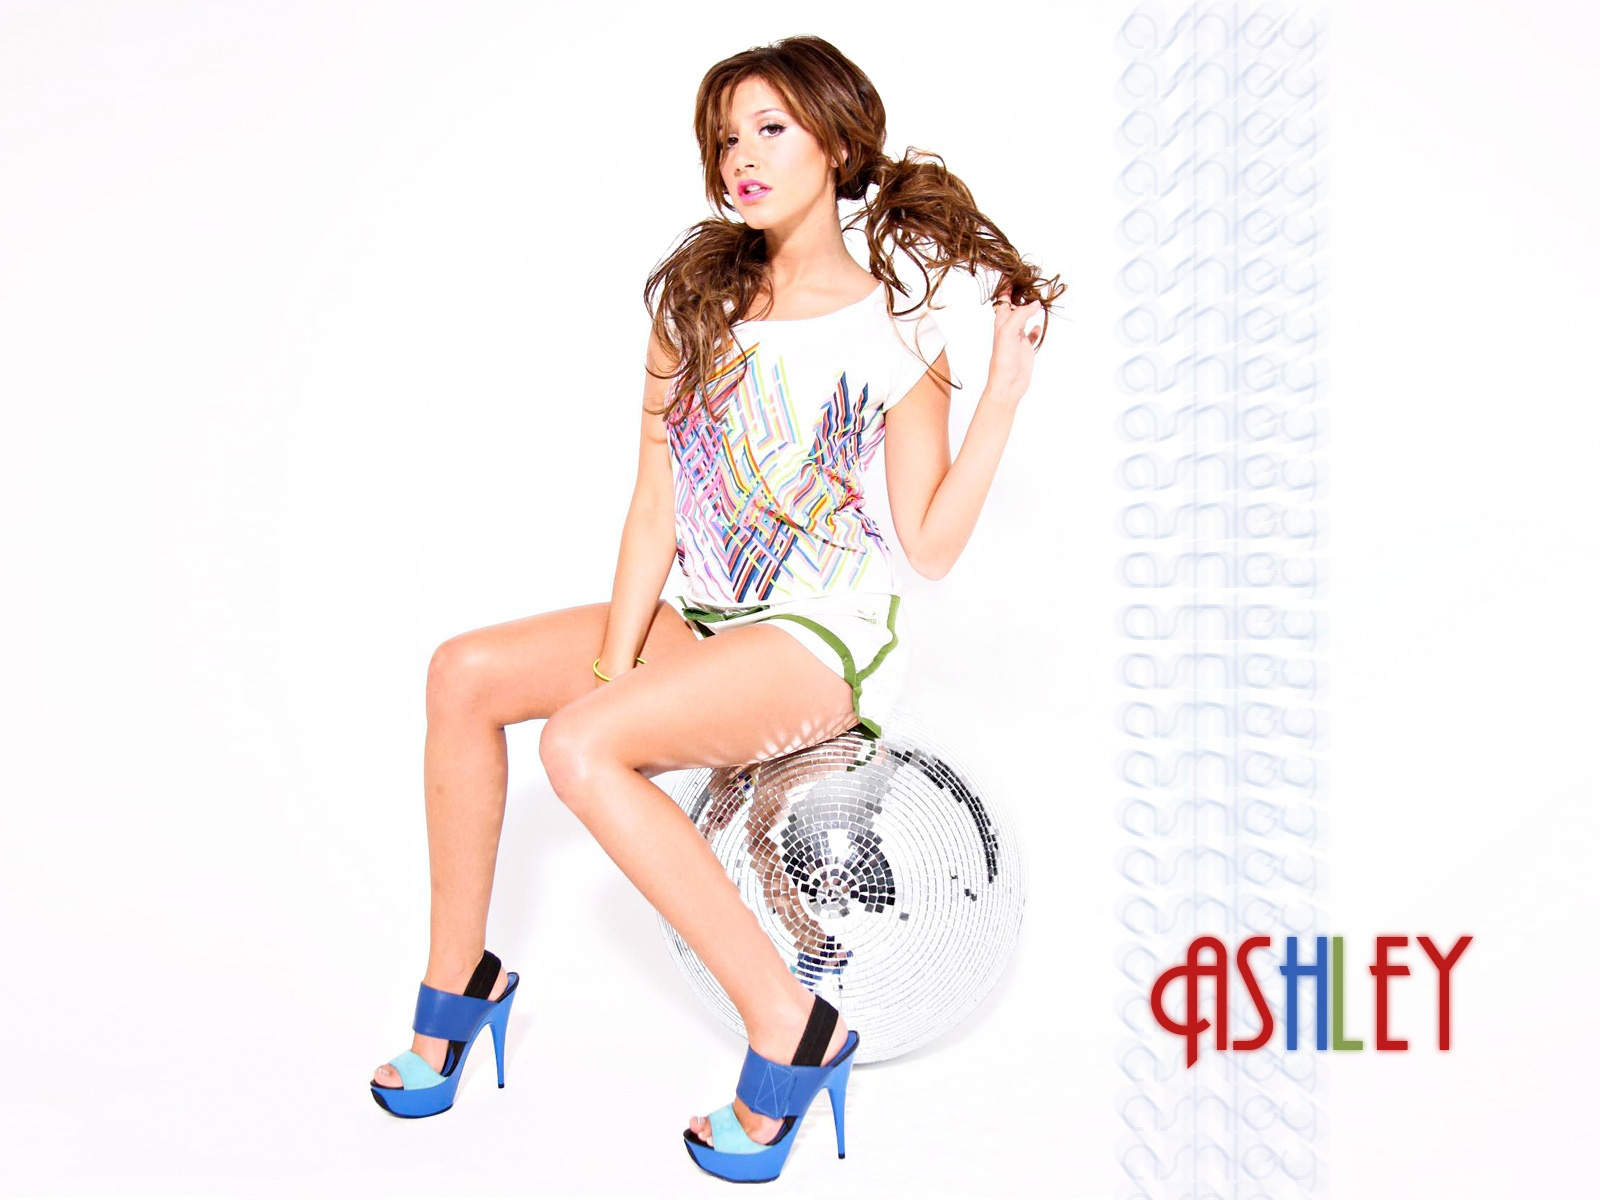 1600x1200 - Ashley Tisdale Wallpapers 16